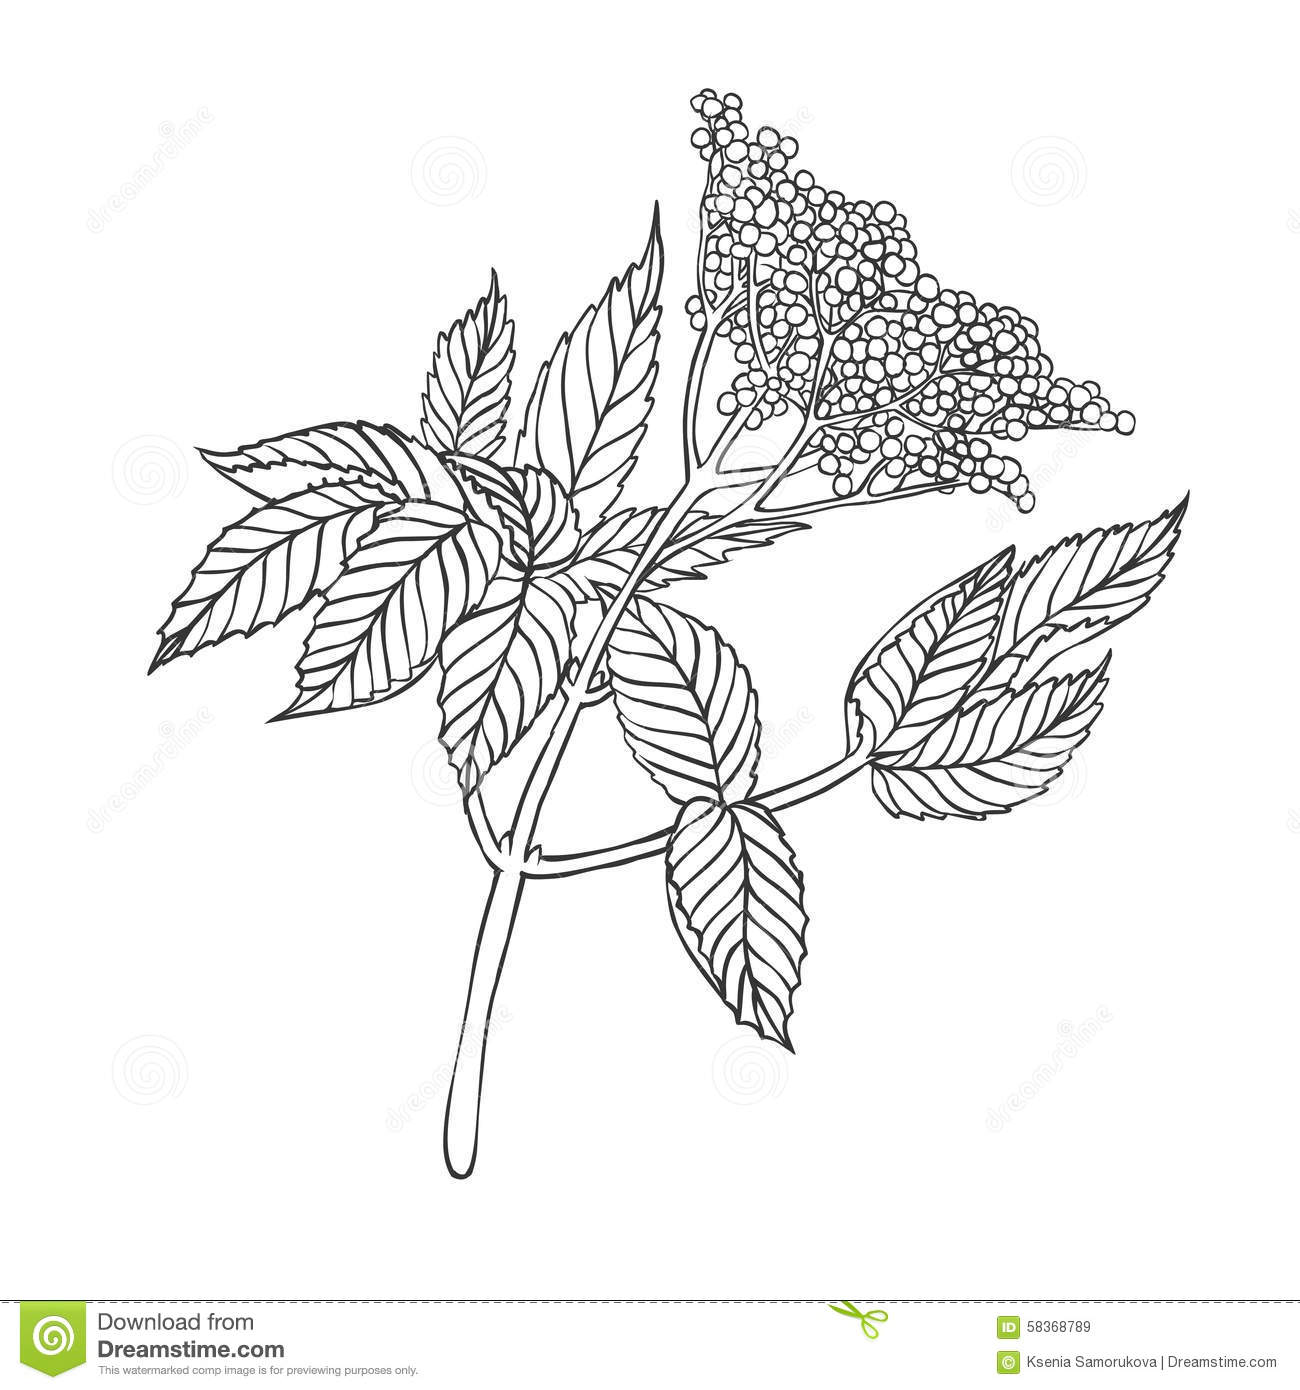 Elderberry tree black and white clipart.